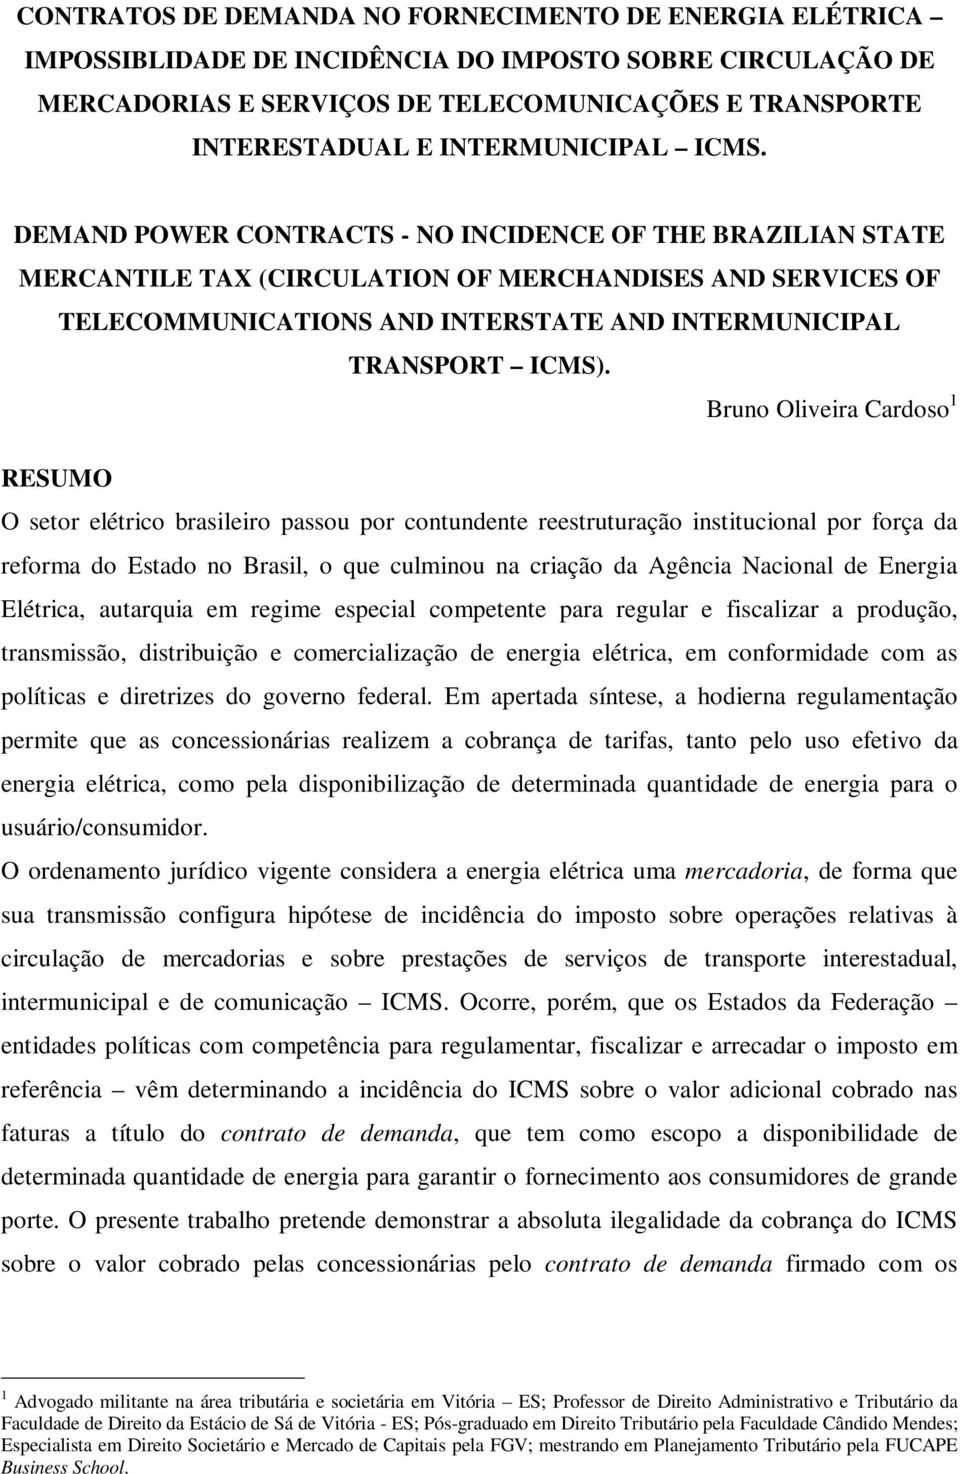 DEMAND POWER CONTRACTS - NO INCIDENCE OF THE BRAZILIAN STATE MERCANTILE TAX (CIRCULATION OF MERCHANDISES AND SERVICES OF TELECOMMUNICATIONS AND INTERSTATE AND INTERMUNICIPAL TRANSPORT ICMS).